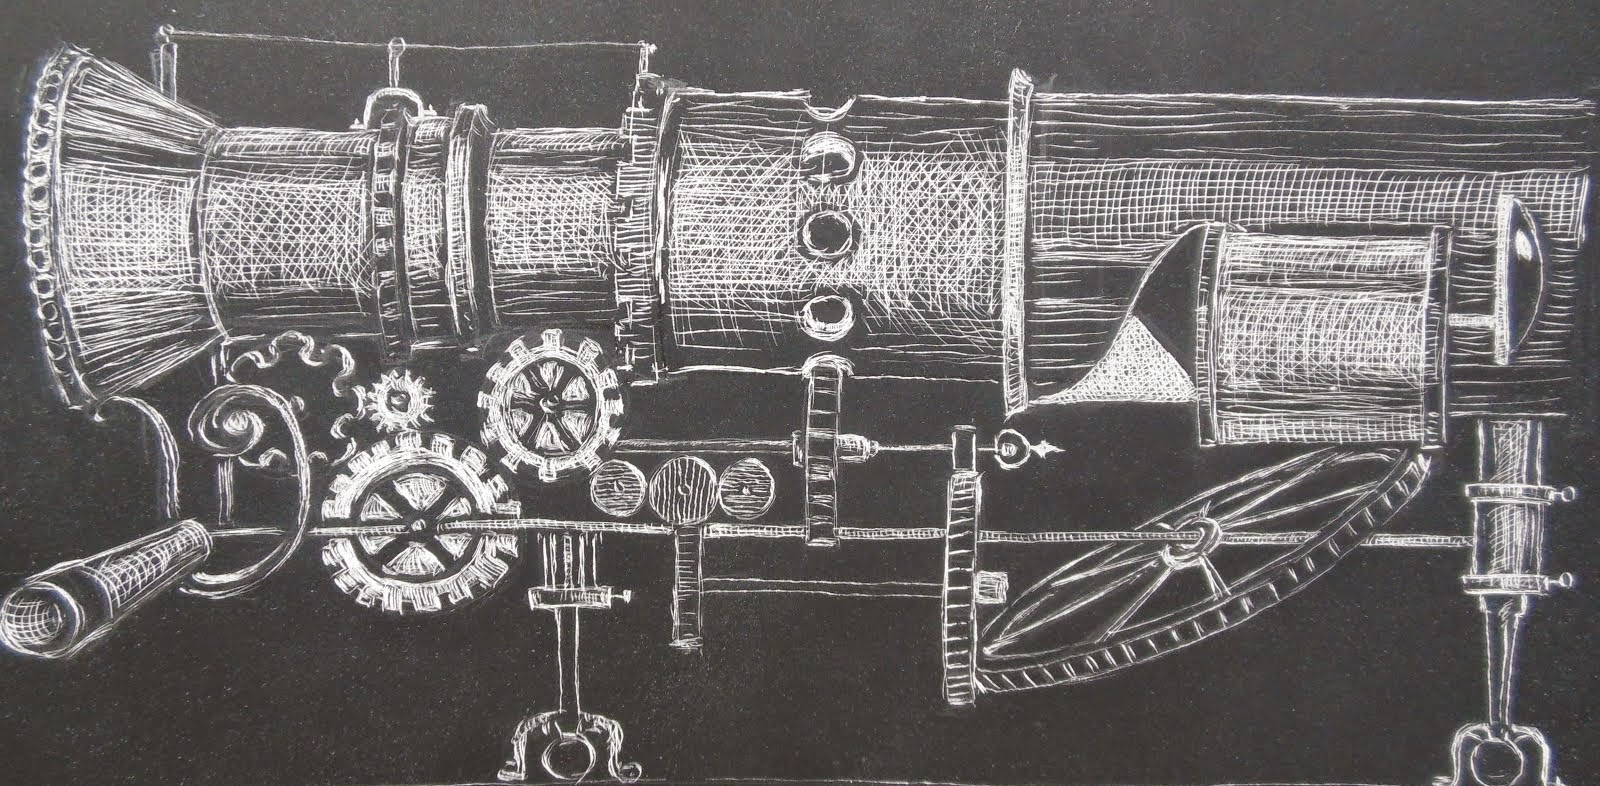 Illustration on scratch board